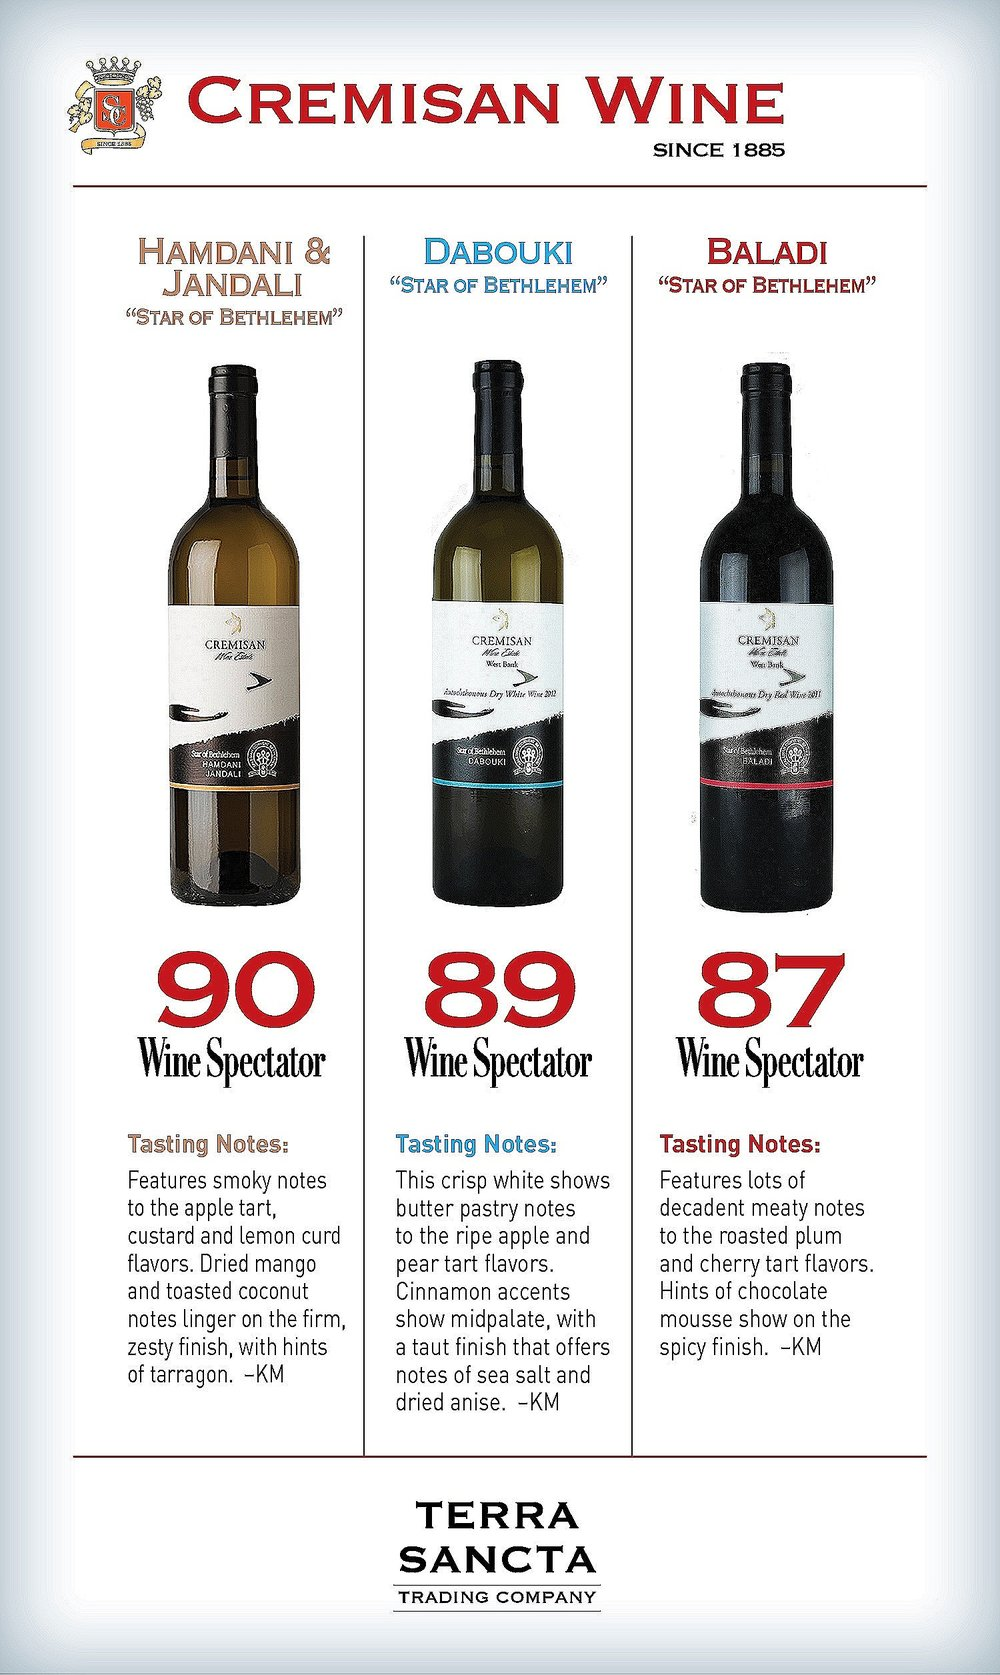 wine spectator ratings 2016.jpg